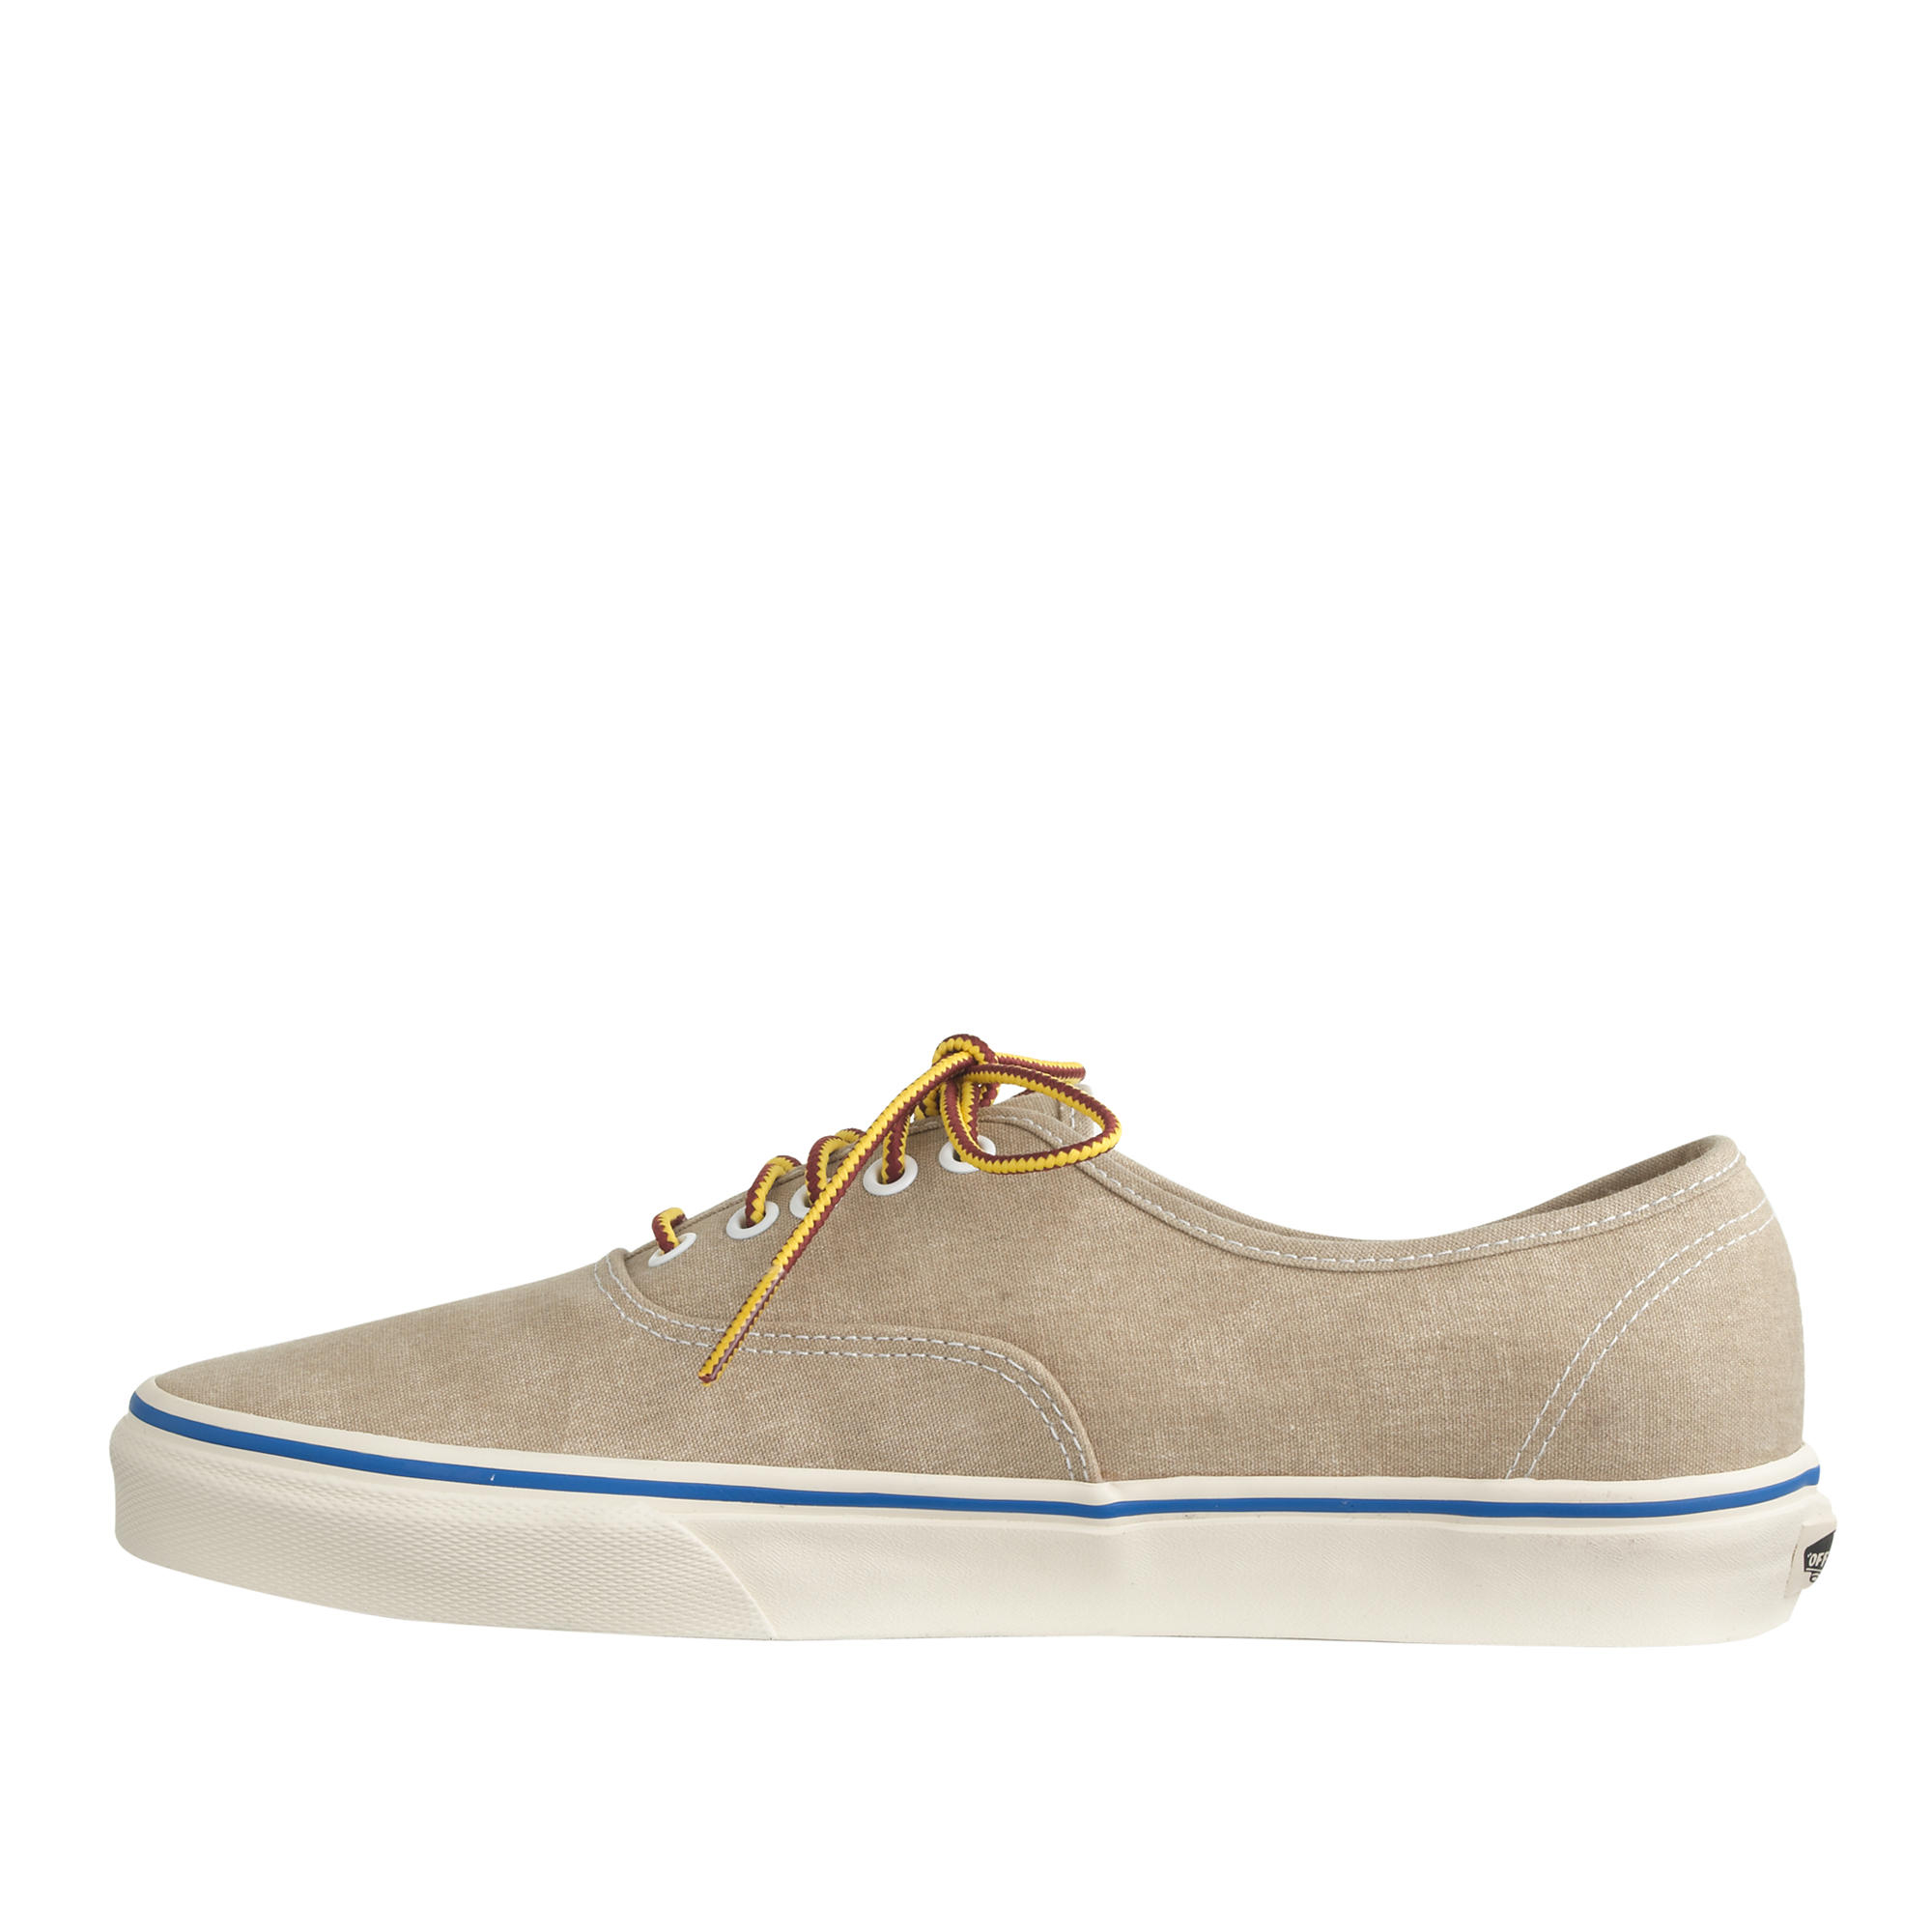 j crew vans washed canvas authentic sneakers in